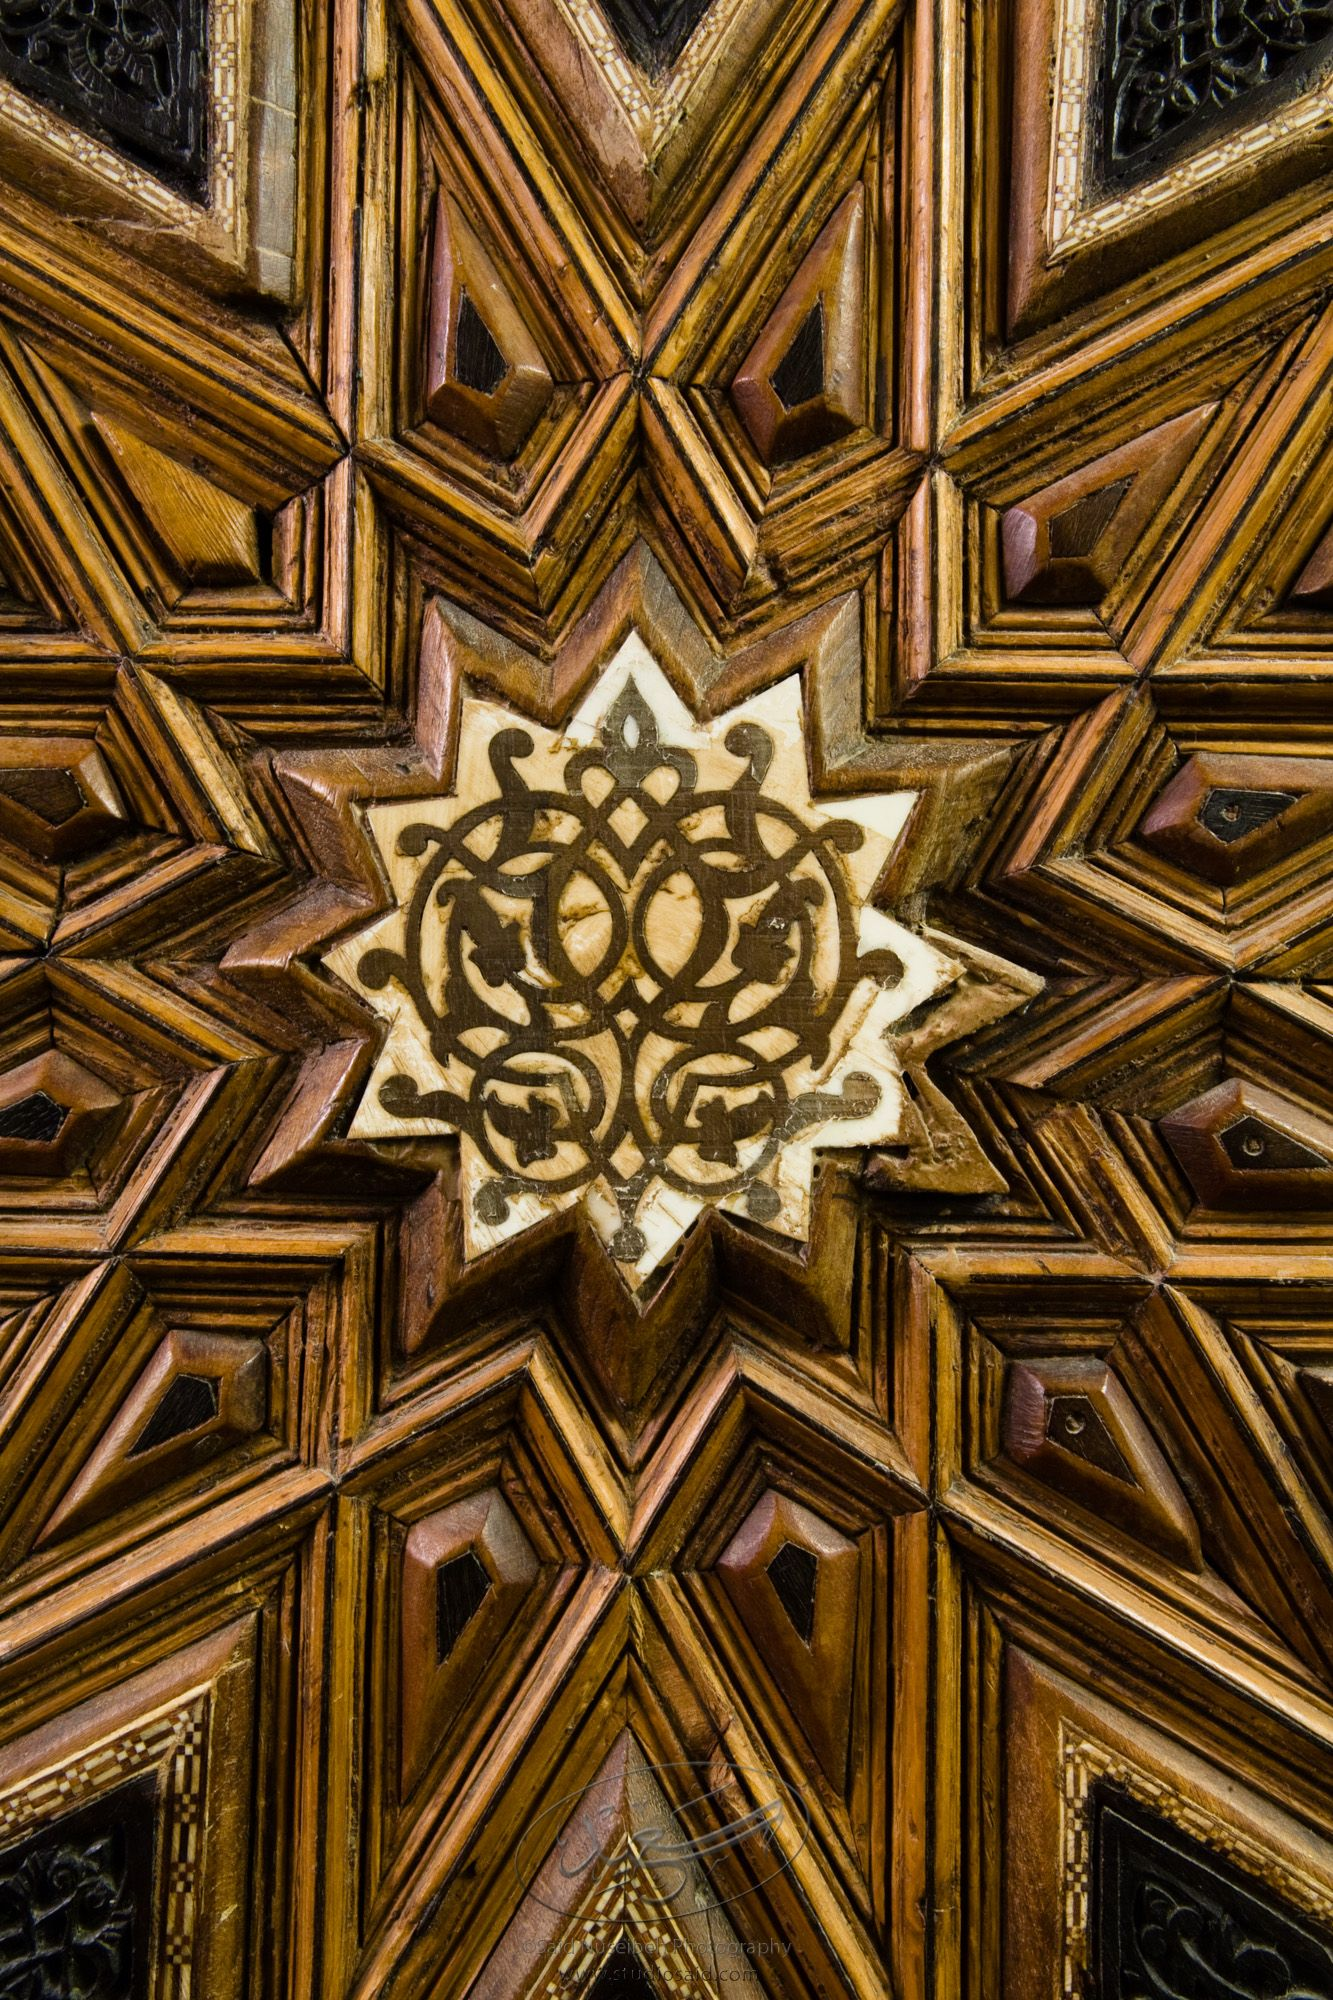 """Symmetrical Floral Interlace inside Dodecagons. Minbar, Carved Woodwork and Inlay Detail""The late-13th / early-14th c. Mamluk minbar, or pulpit, of Sultan al-Nasir Muhammad, the ninth Mamluk Sultan from Cairo and son of Qalawun. The minbar was located in the Umayyad Mosque in Aleppo, Haleb, prior to its damage and disappearance in May 2013."